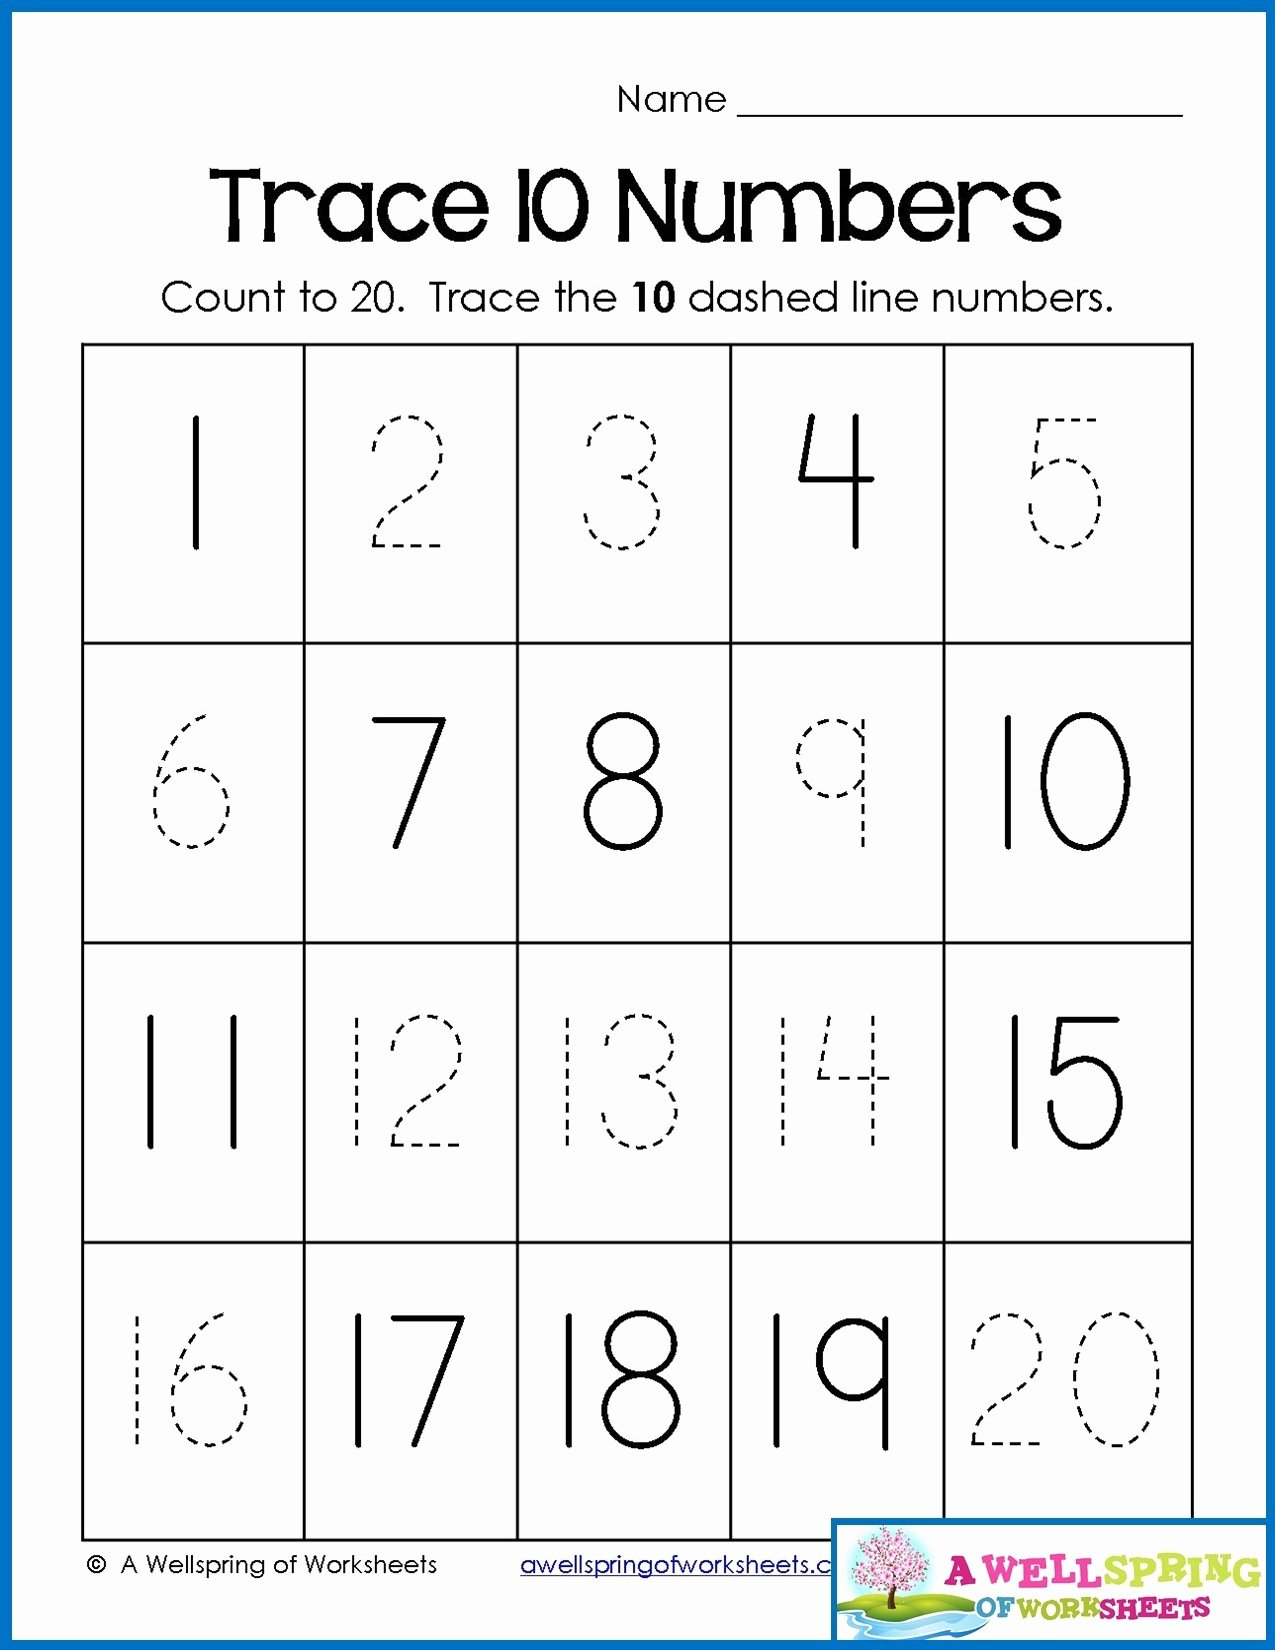 Worksheets for Preschoolers Counting Best Of Math Worksheet Number Worksheets for Preschool Christmas